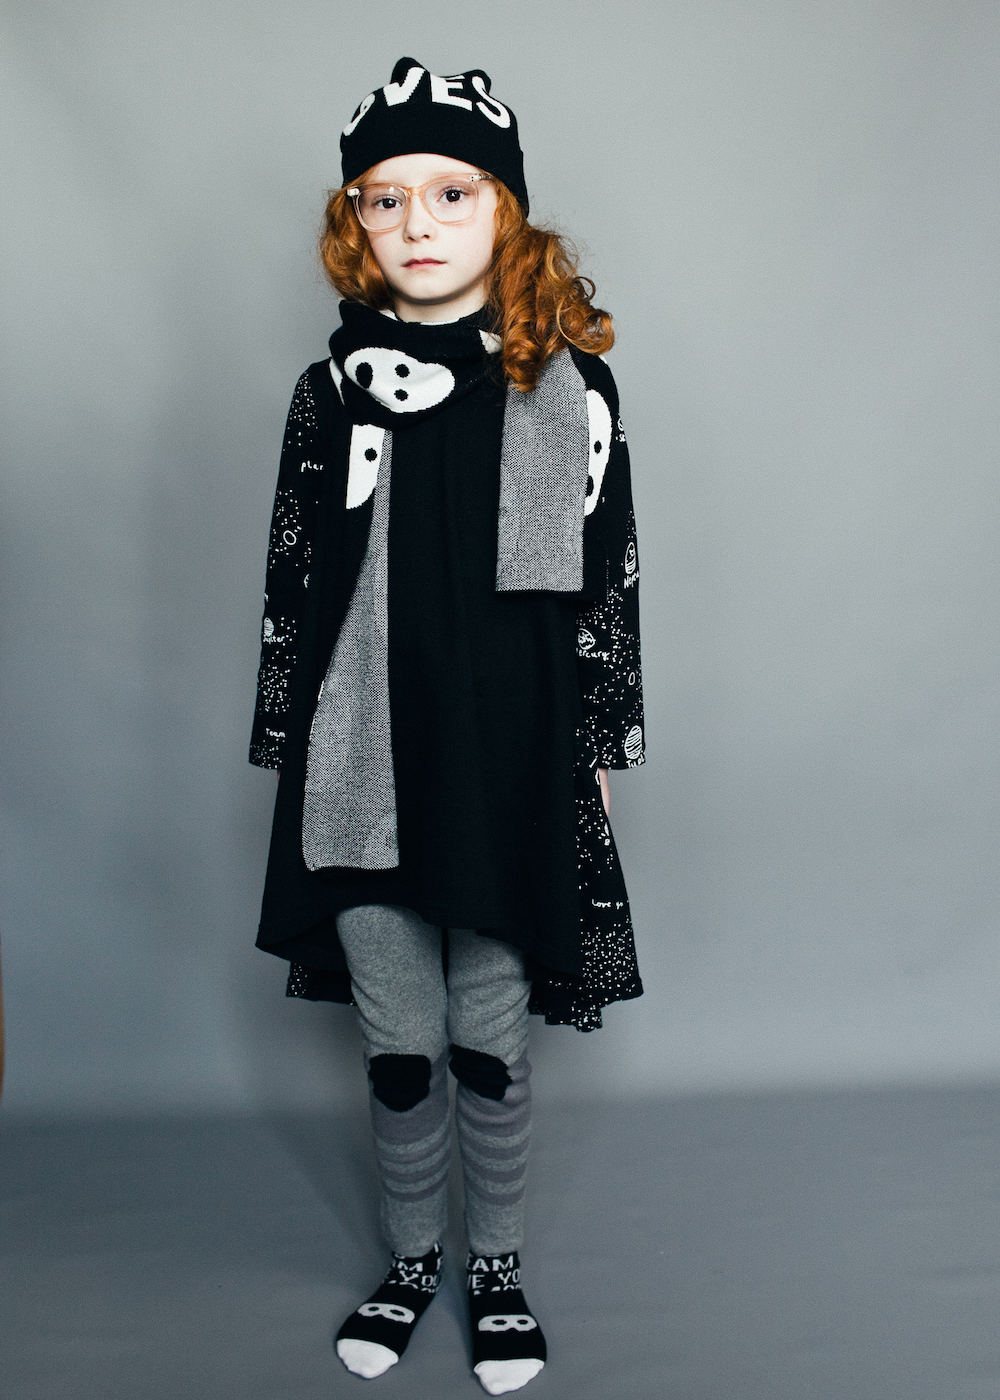 Beau-Loves-AW16-Knitted-Loves-Hat-Ghost-Scarf-and-Luna-Dress